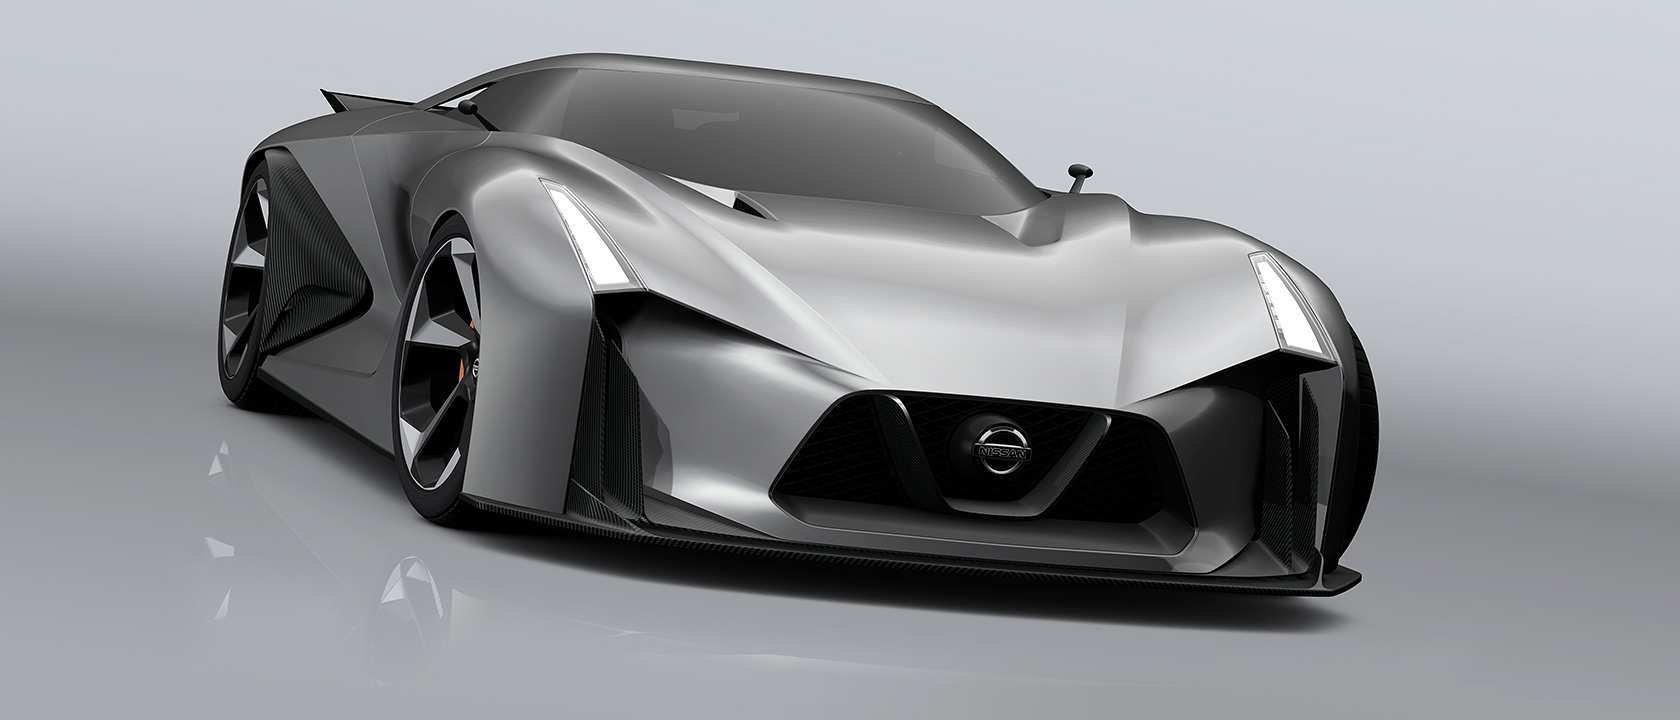 80 New Nissan Concept 2020 Top Speed Concept And Review